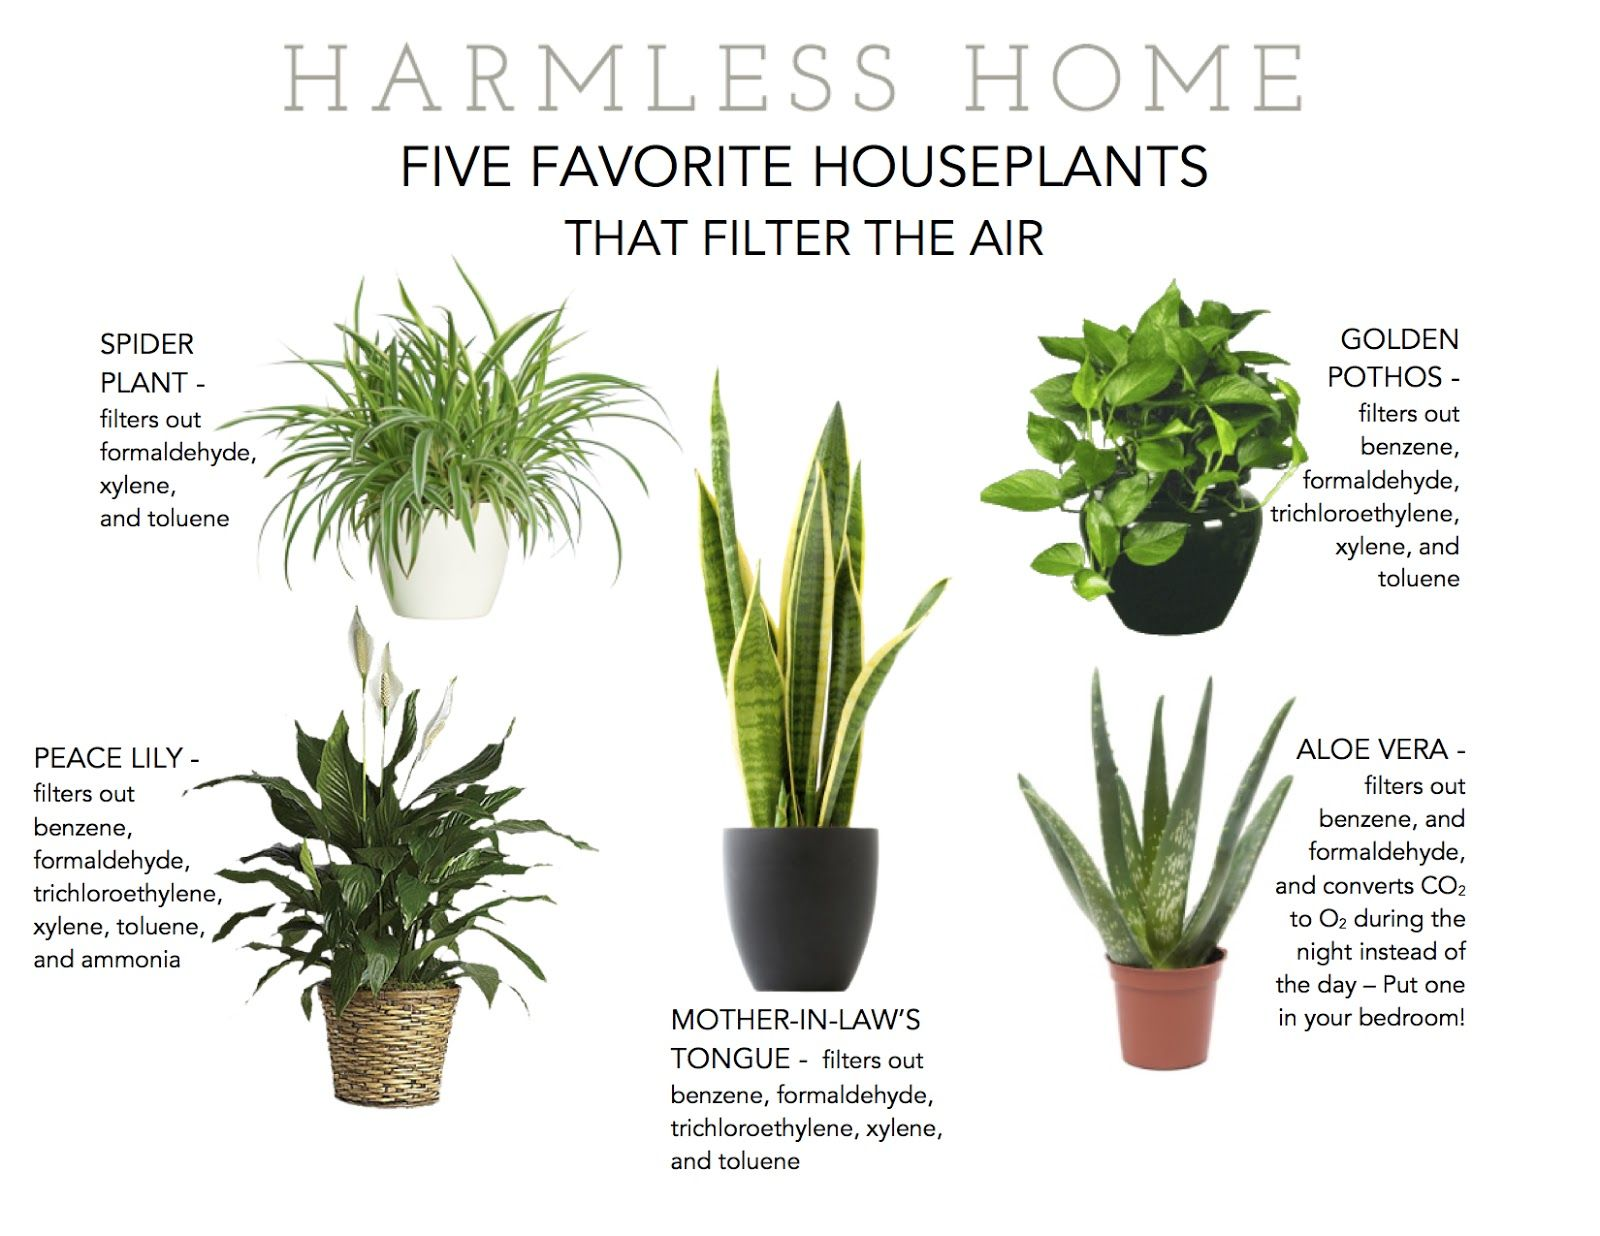 Use plants to increase positive energy and clean the air.